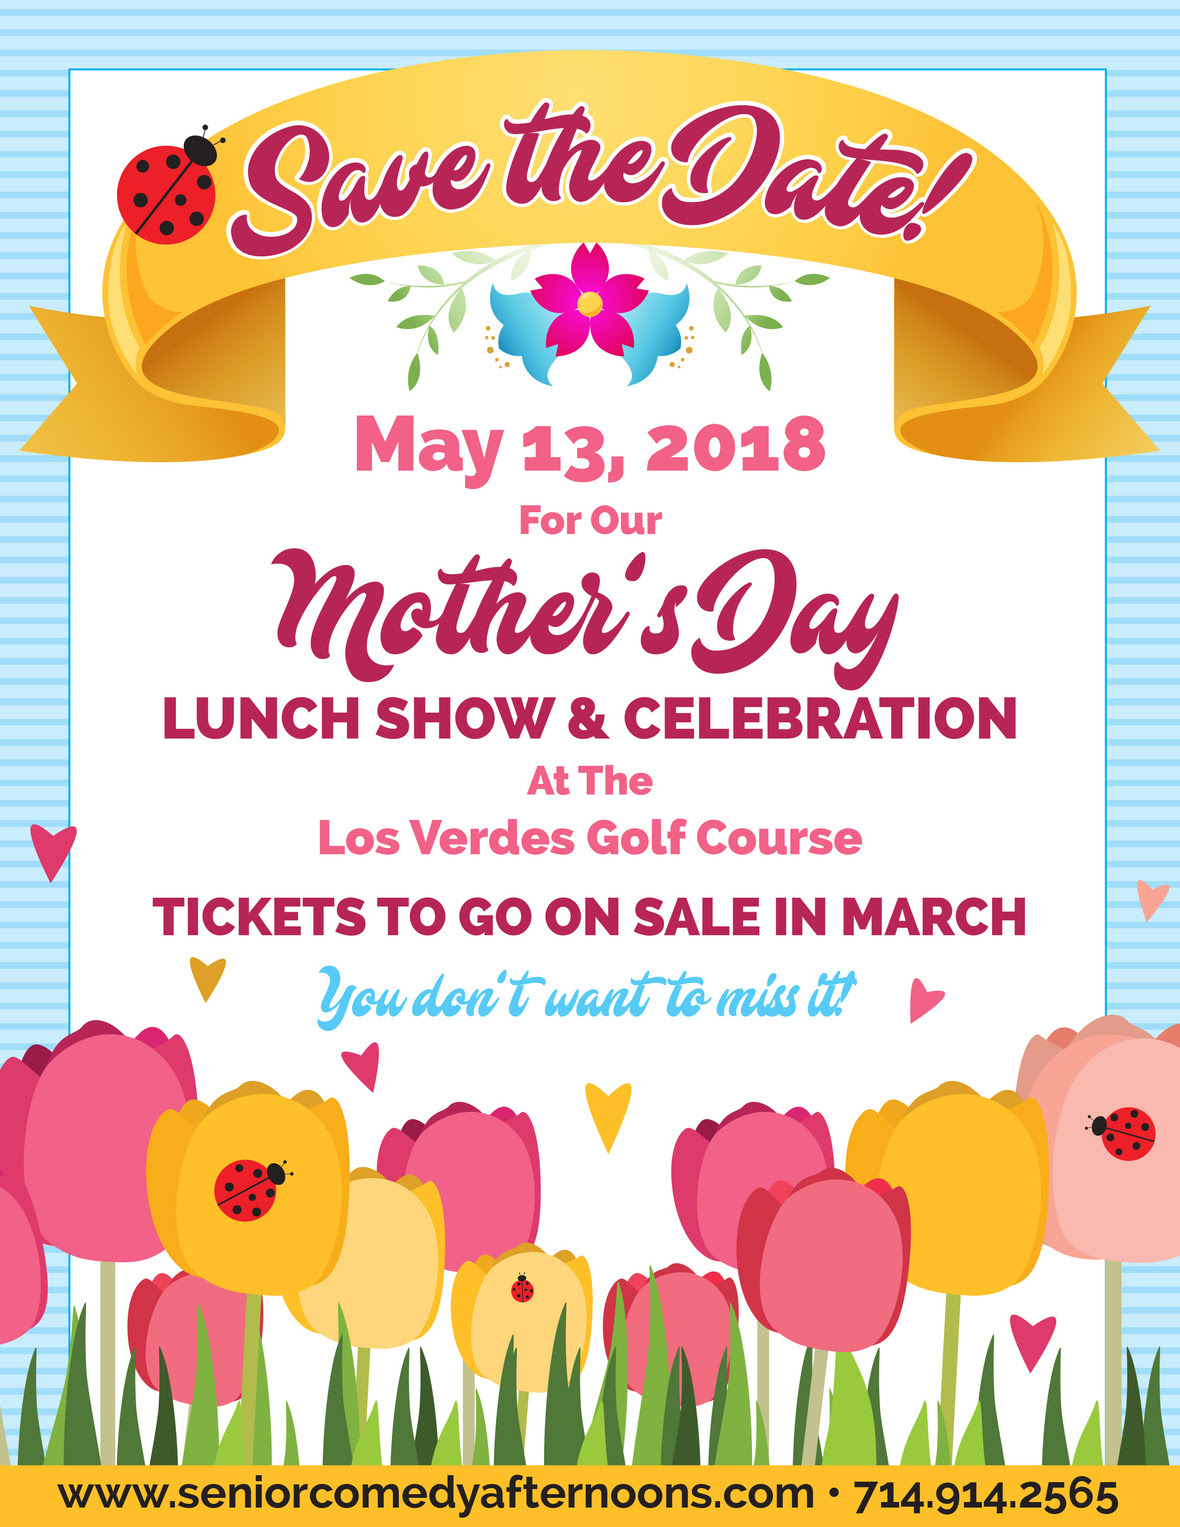 Mother's Day Lunch Show & Celebration @ Los Verdes Golf Course | Rancho Palos Verdes | California | United States